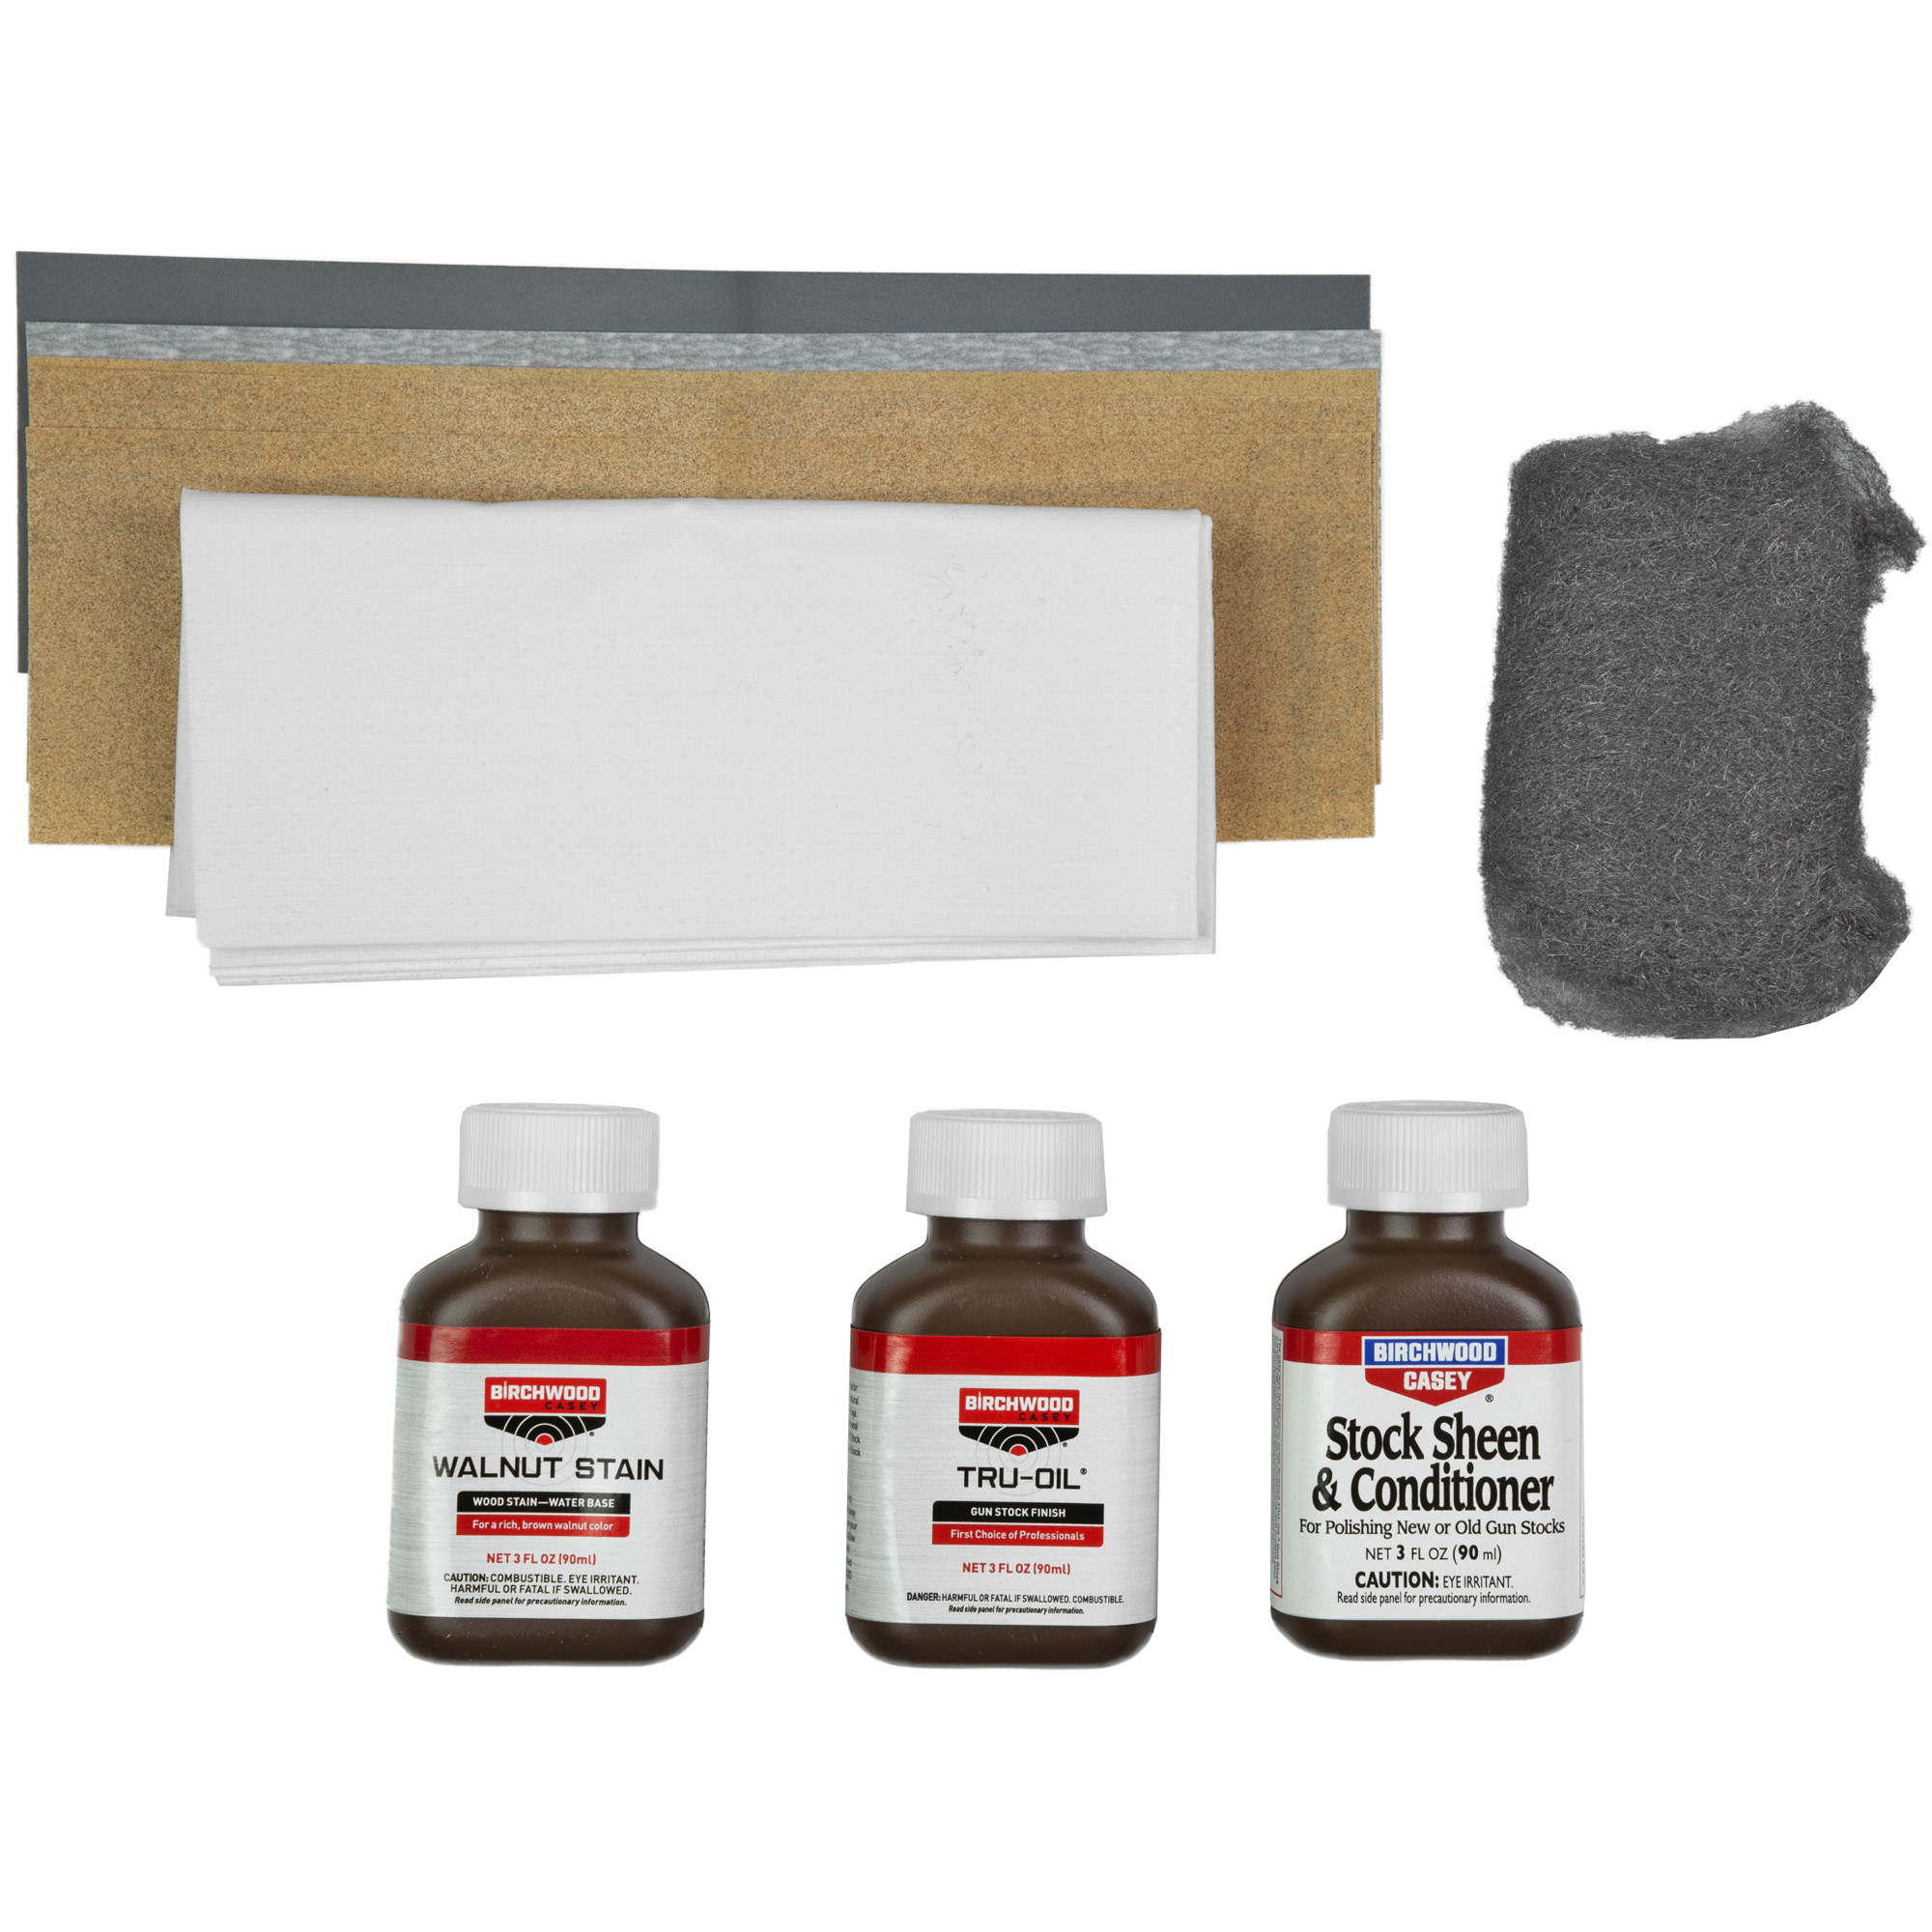 B/c Gsk Tru-oil Stock Finish Kit